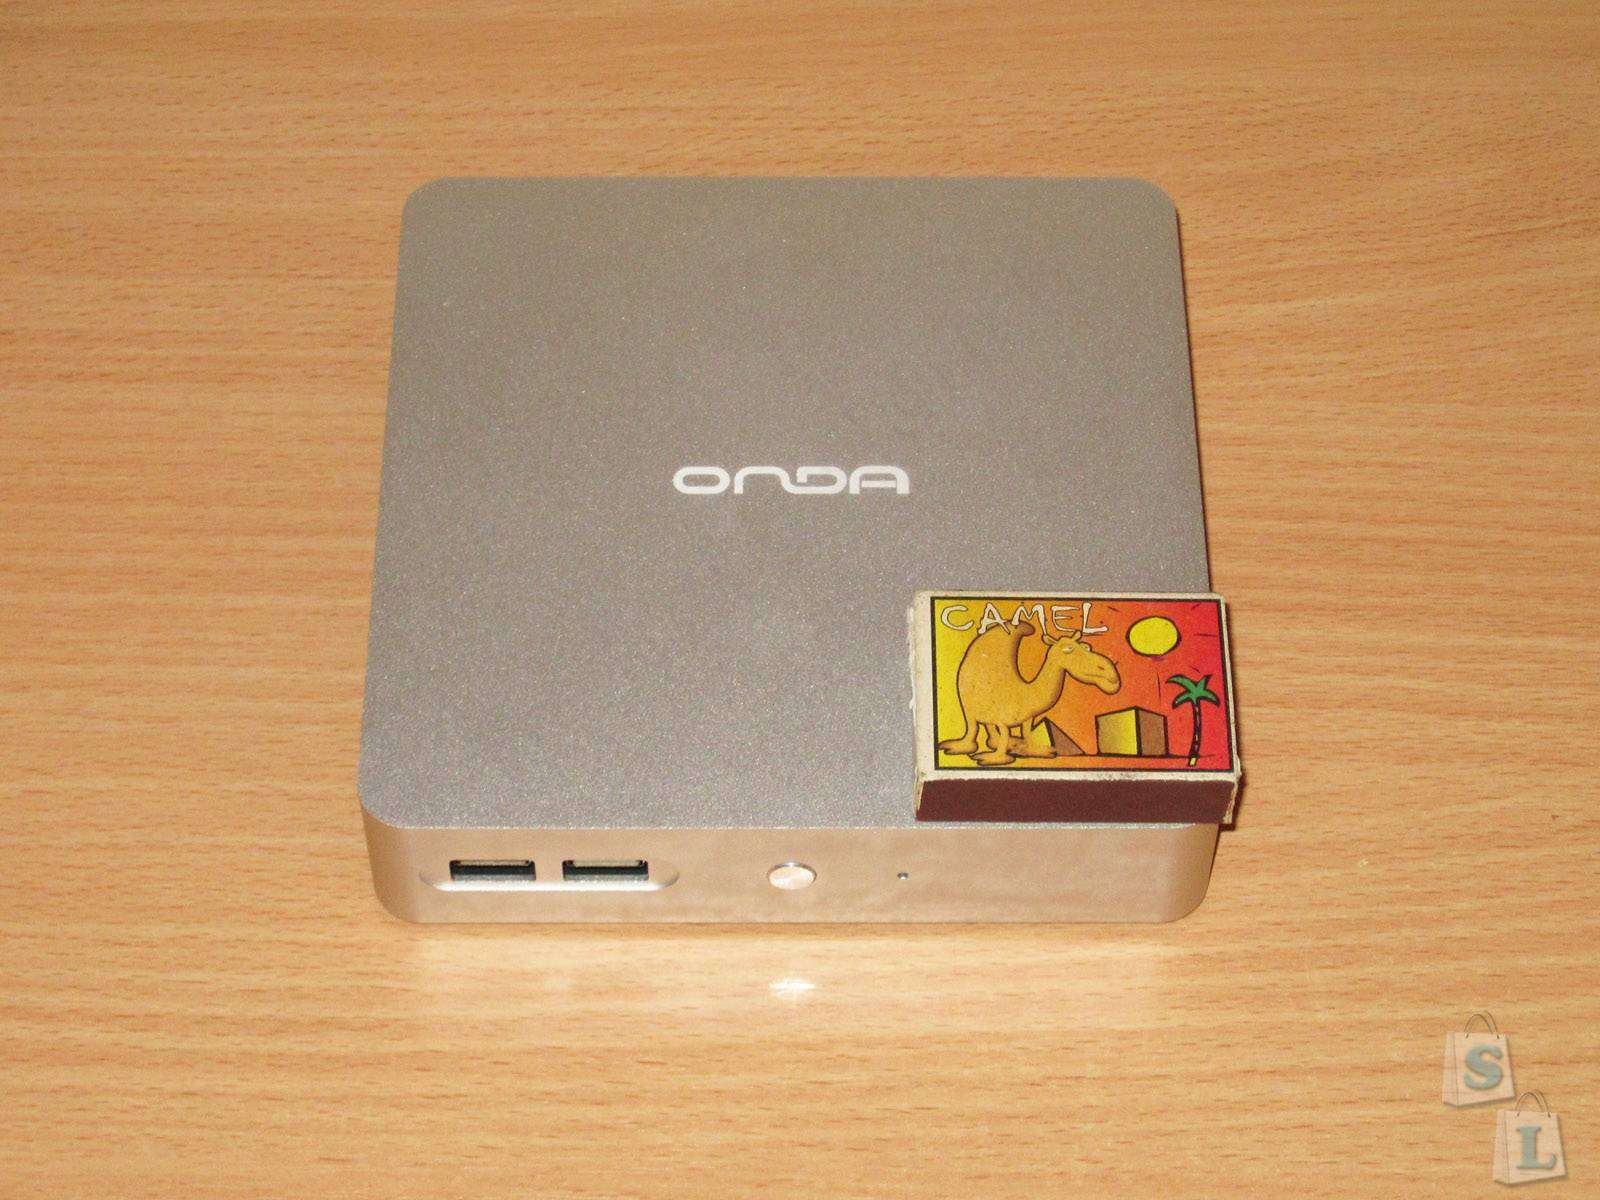 GearBest: Onda M2 Mini PC, небольшой, но не на Атоме